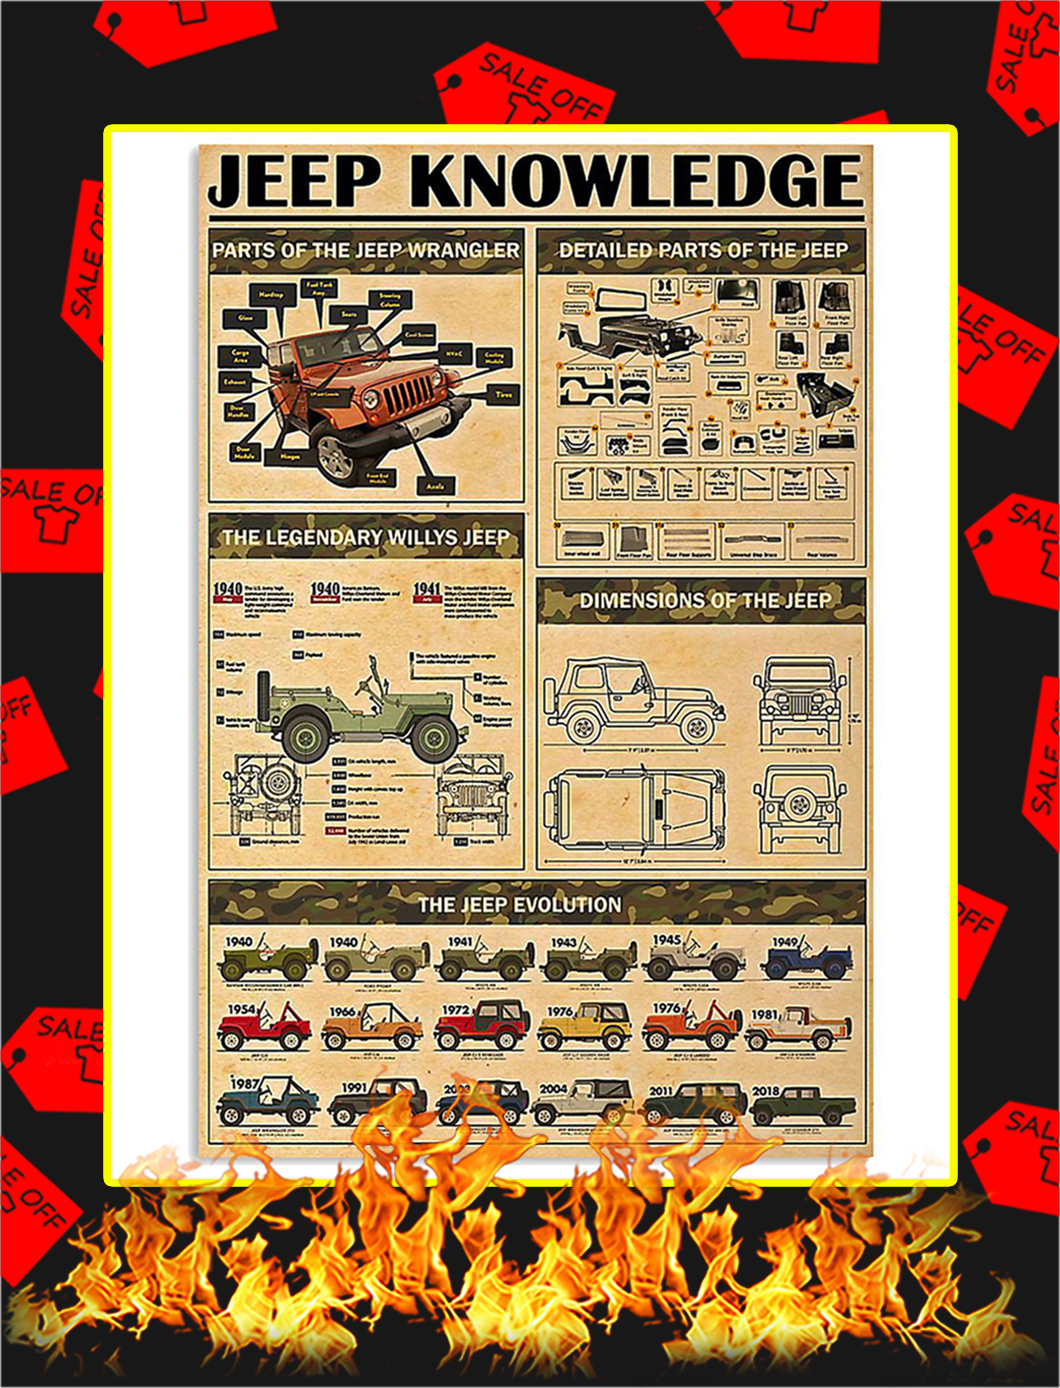 Jeep Knowledge Poster - 24x36